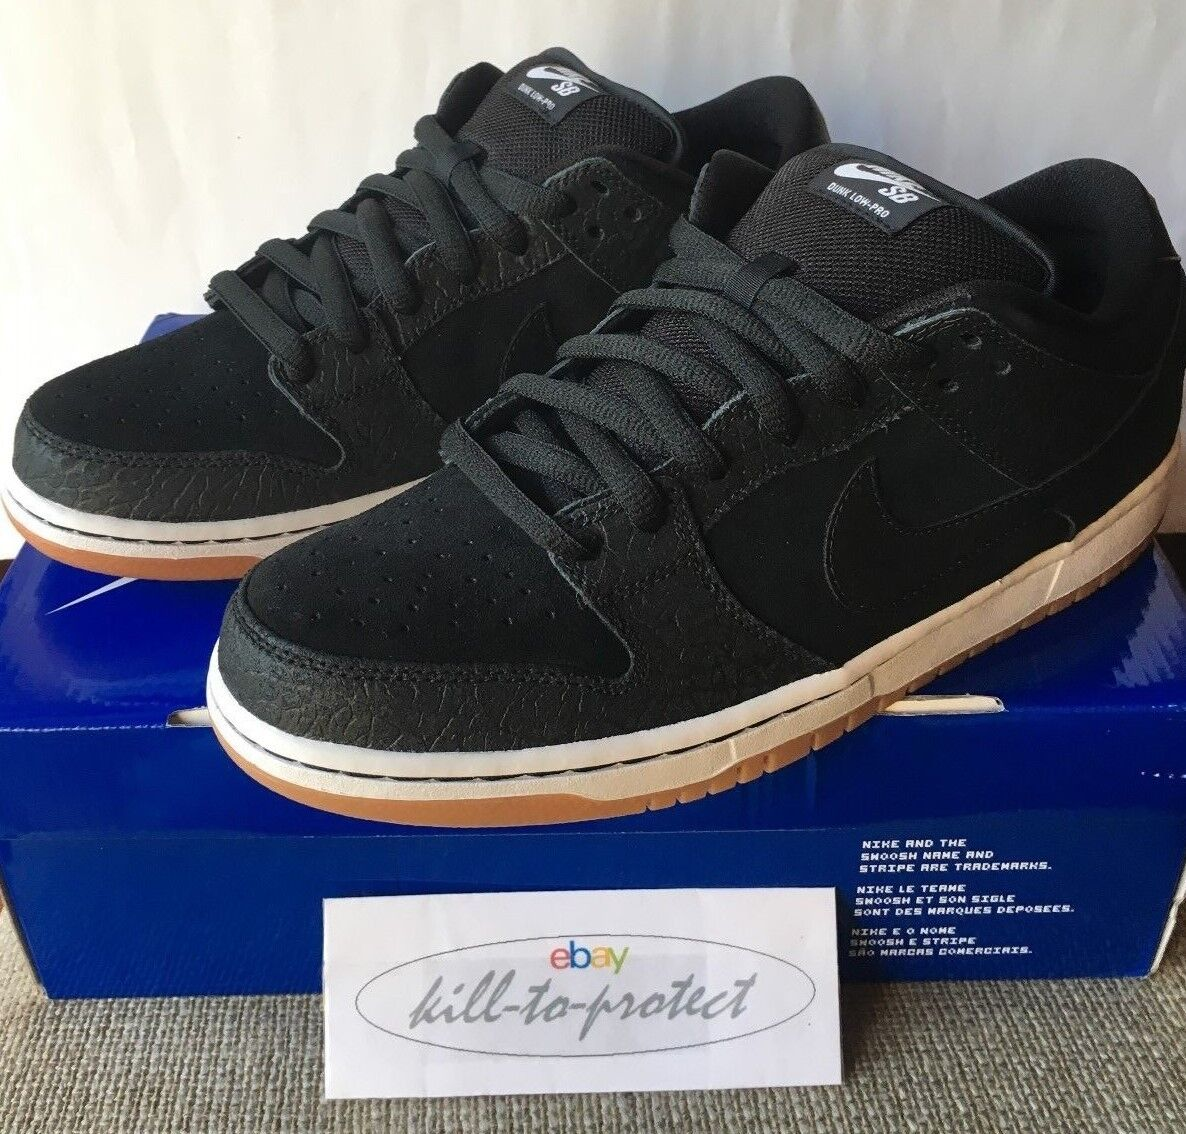 Nike dunk dunk Nike low sb - entourage nontourage sz us10.5 uk9.5 504750-040 2012 e41e7e